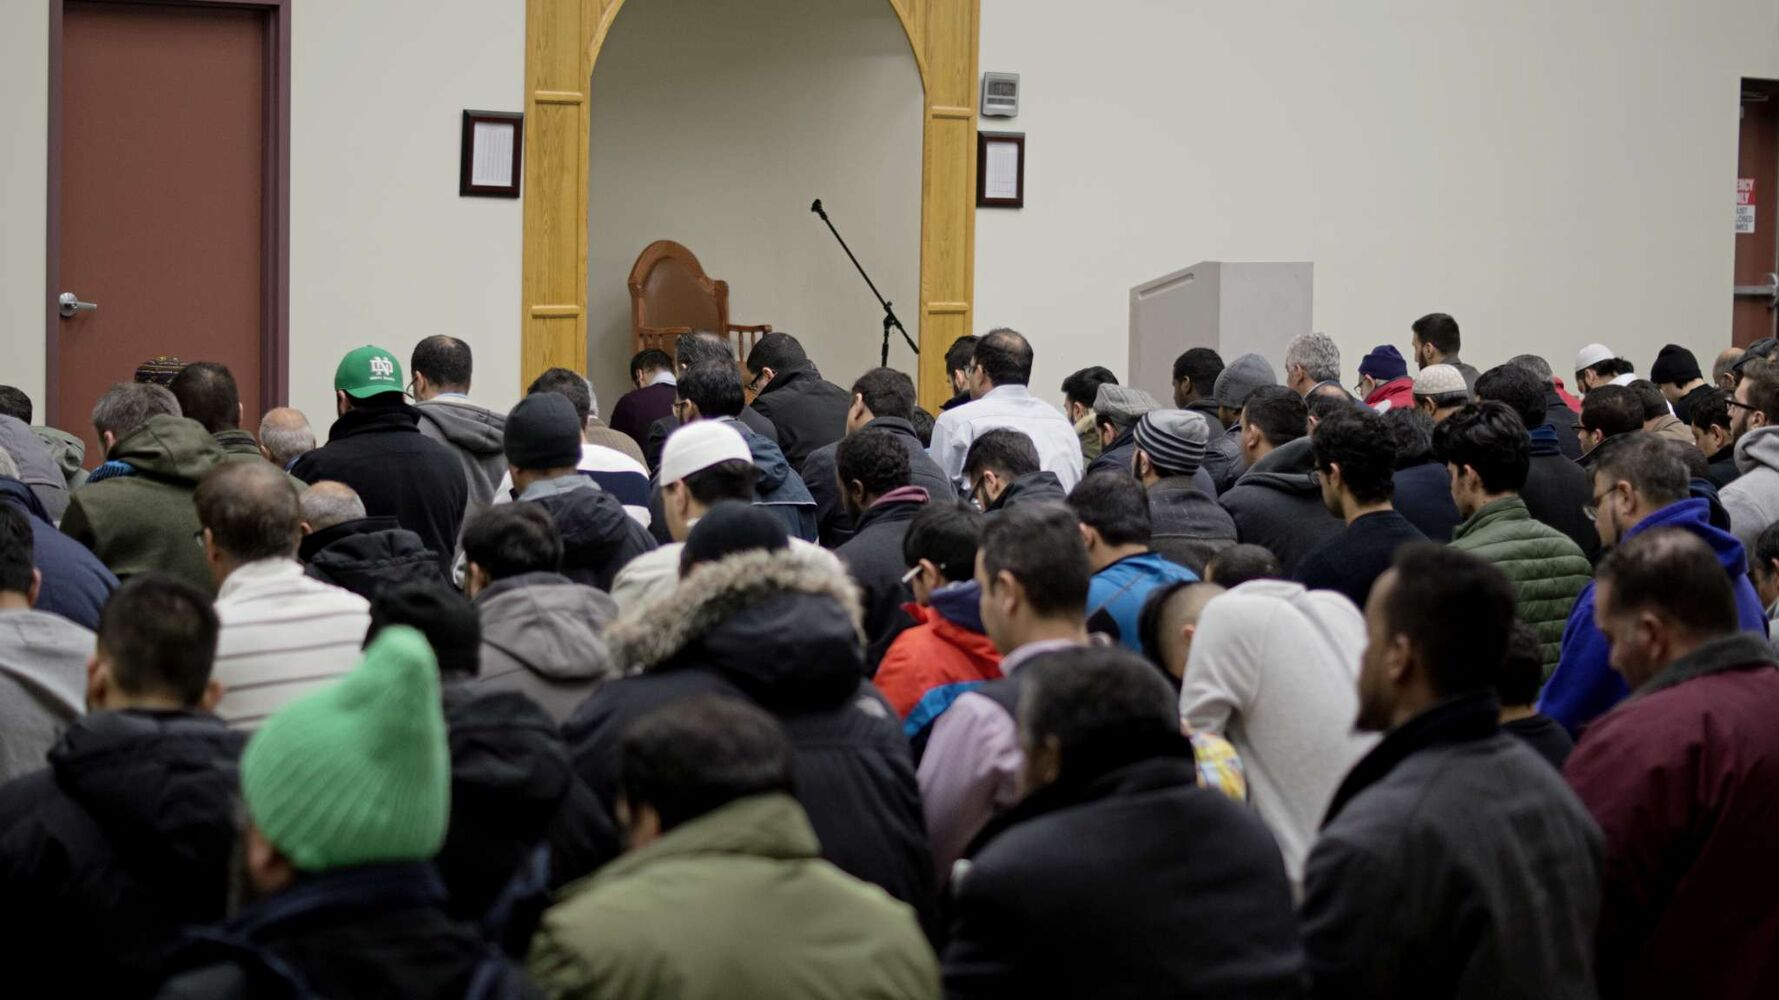 A special prayer was held at the Winnipeg Grand Mosque (2445 Waverley St.)  to mourn the six people who died and 19 more injured when a shooter opened fire at the Centre Culturel Islamique de Québec. (Danielle Da Silva - Sou'wester)